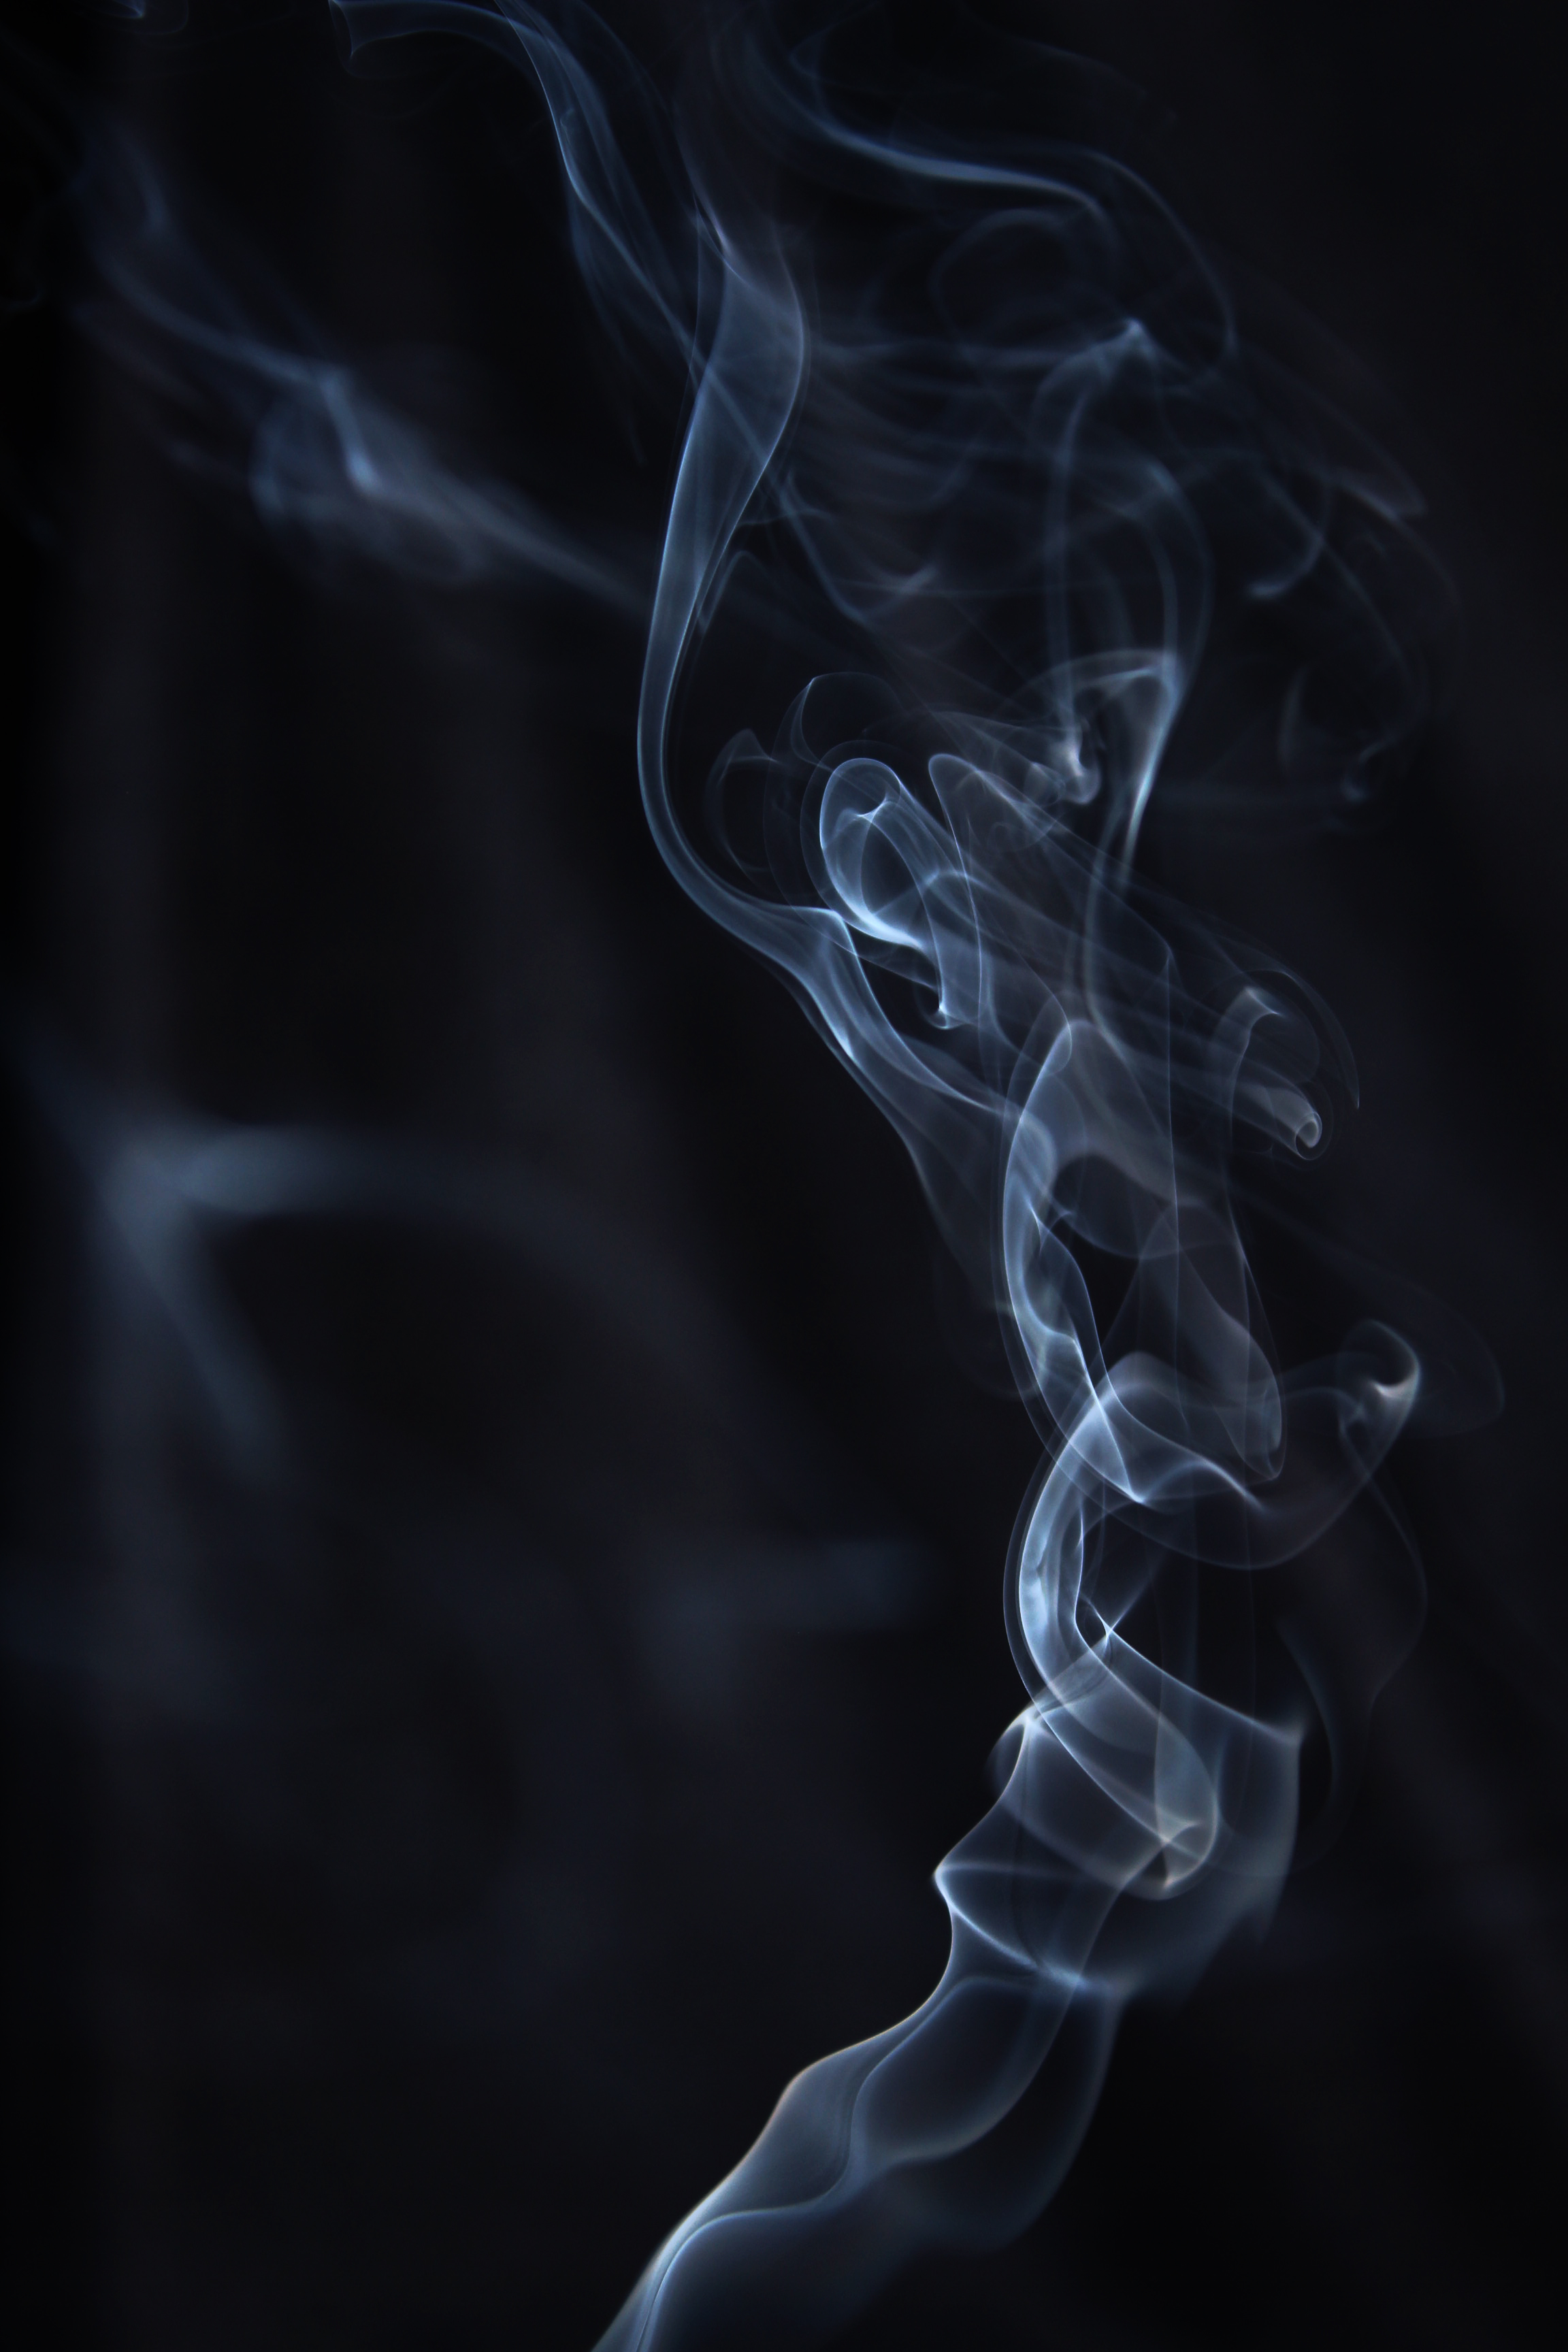 smoke photos 6